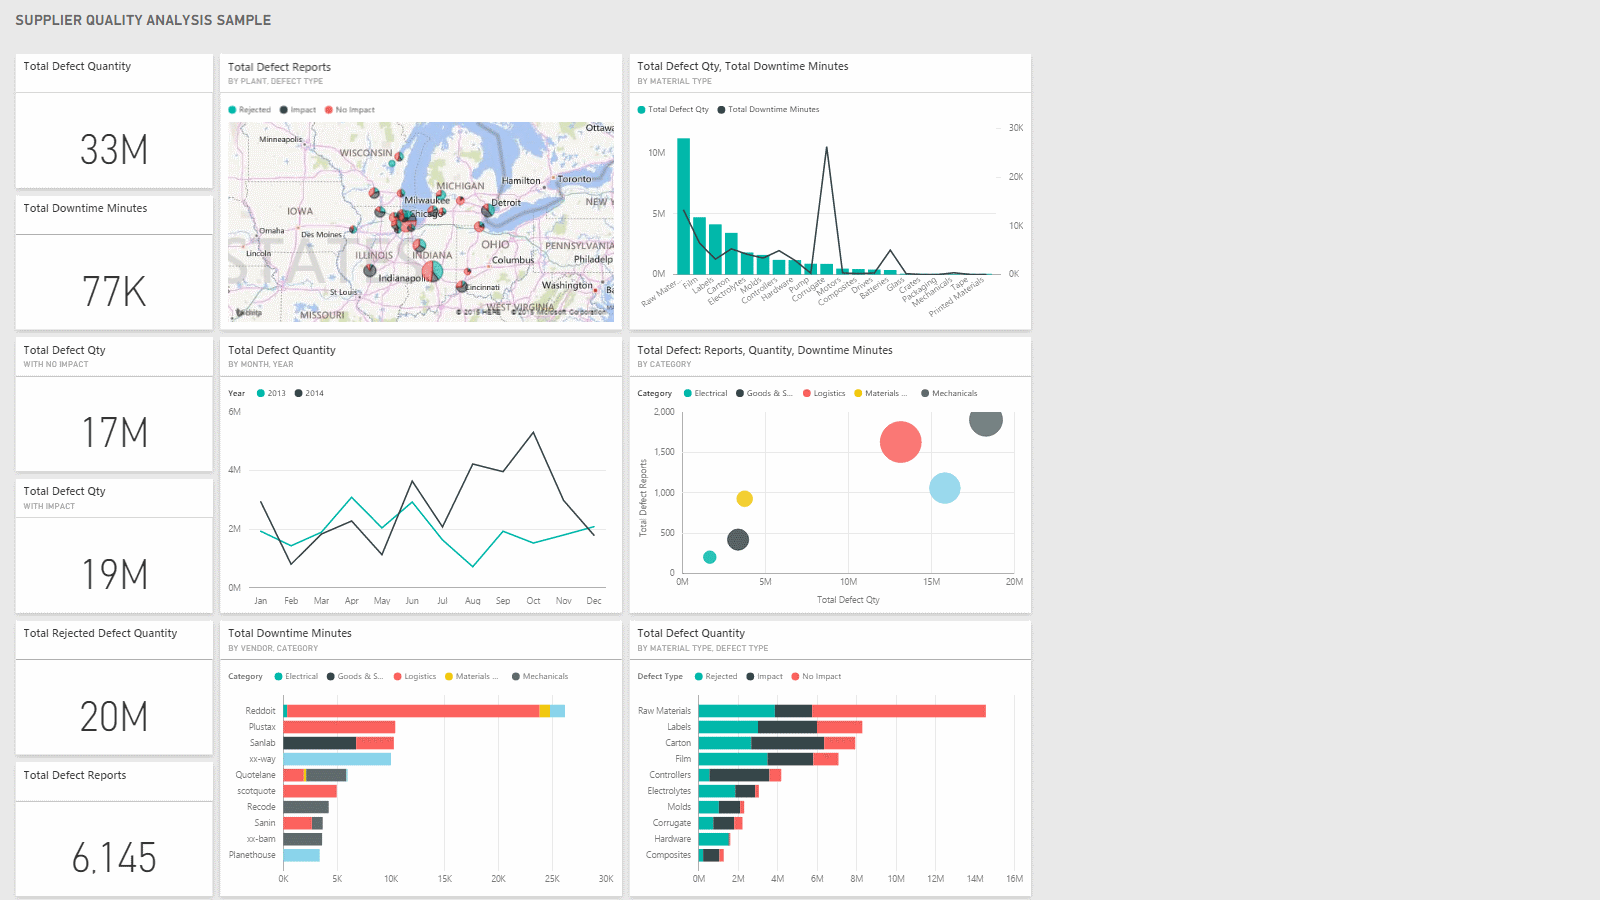 Dashboard: SUPPLIER QUALITY ANALYSIS